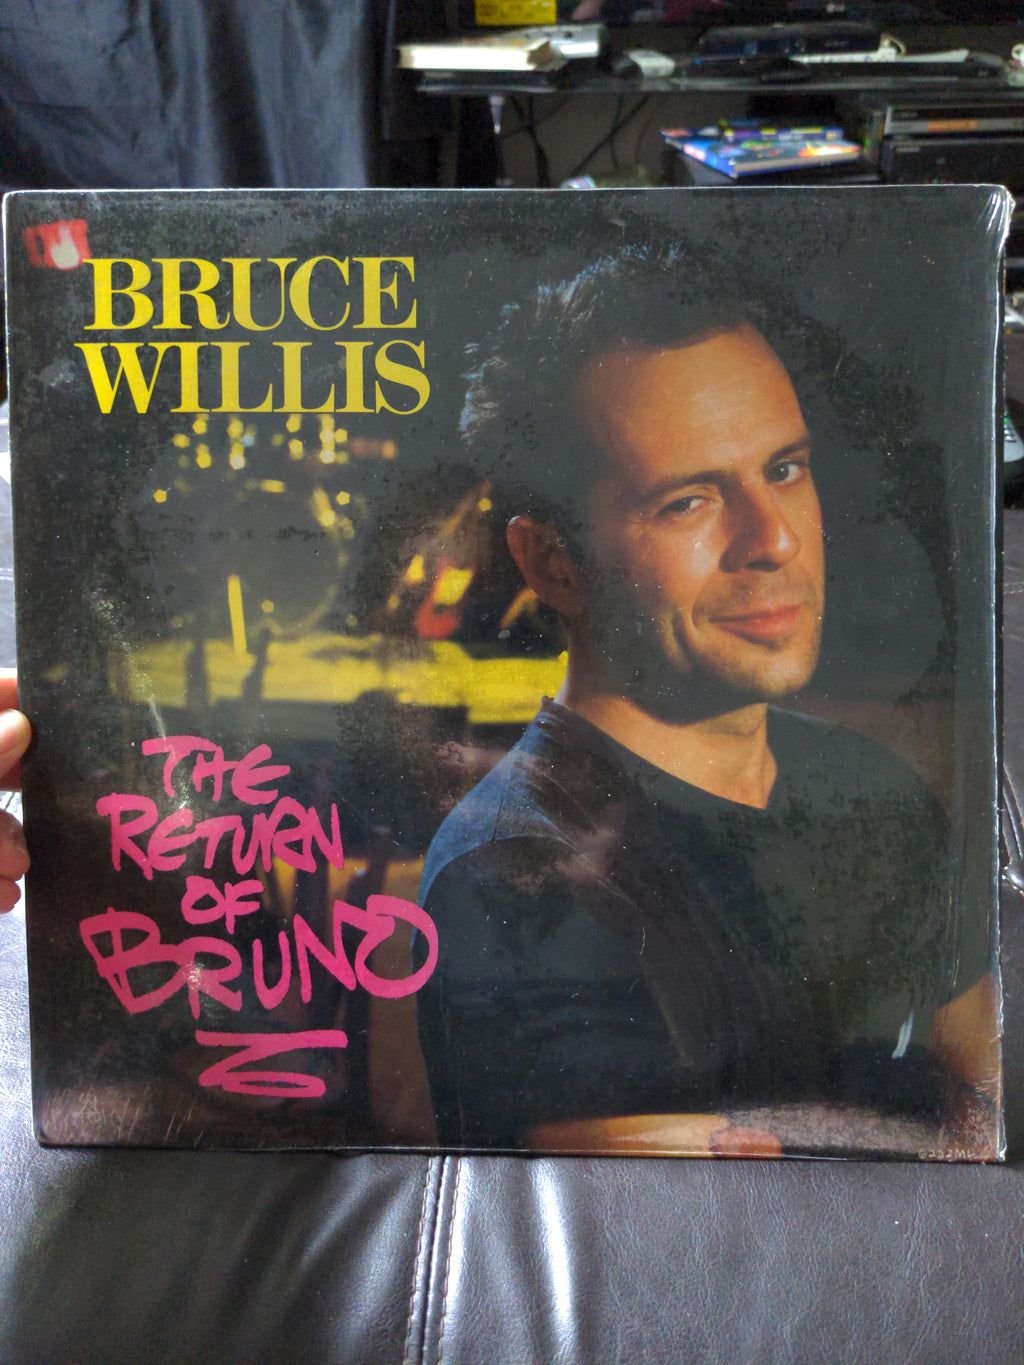 Bruce Willis The Return Of Bruno Vinyl 33 RPM Record Album 6222ML